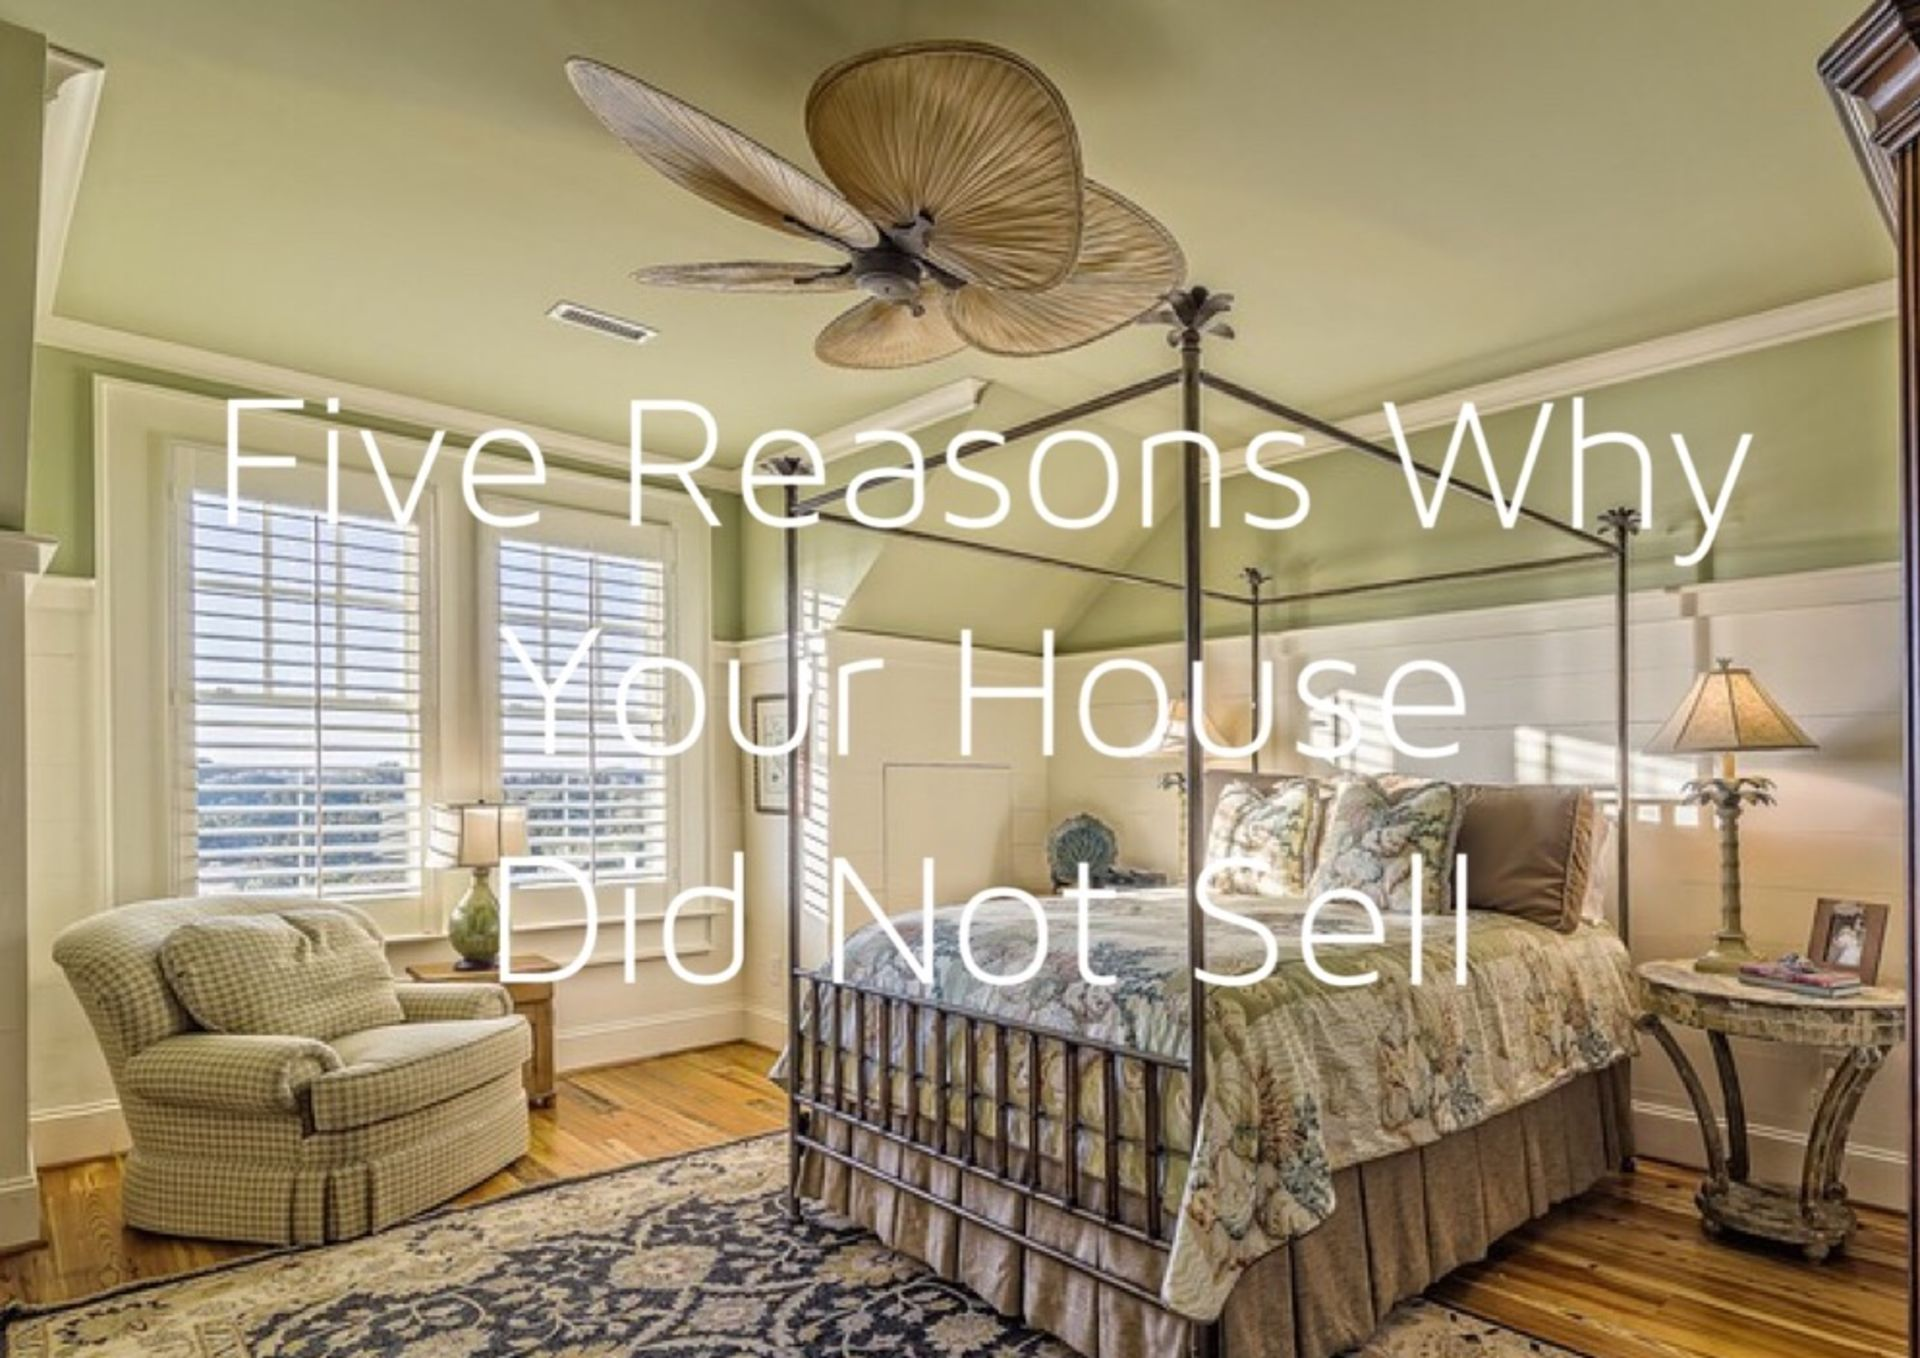 Five Reasons Why Your House Did Not Sell